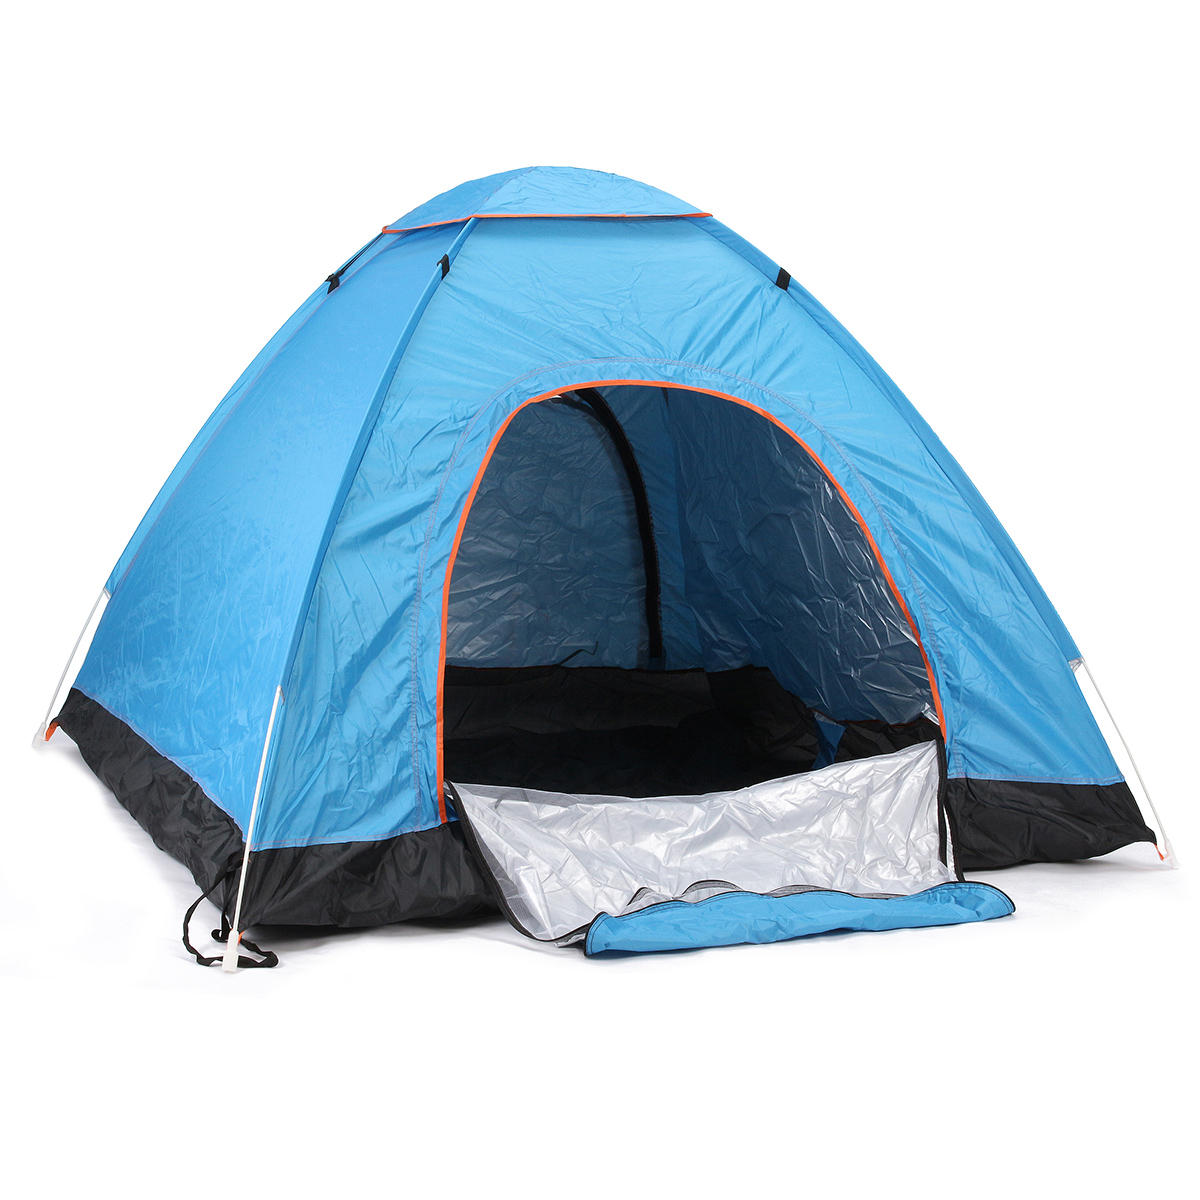 Outdoor 3-4 Persons C&ing Tent Automatic Open Waterproof UV Beach Sunshade Canopy COD  sc 1 st  Banggood & outdoor 3-4 persons camping tent automatic open waterproof uv beach ...